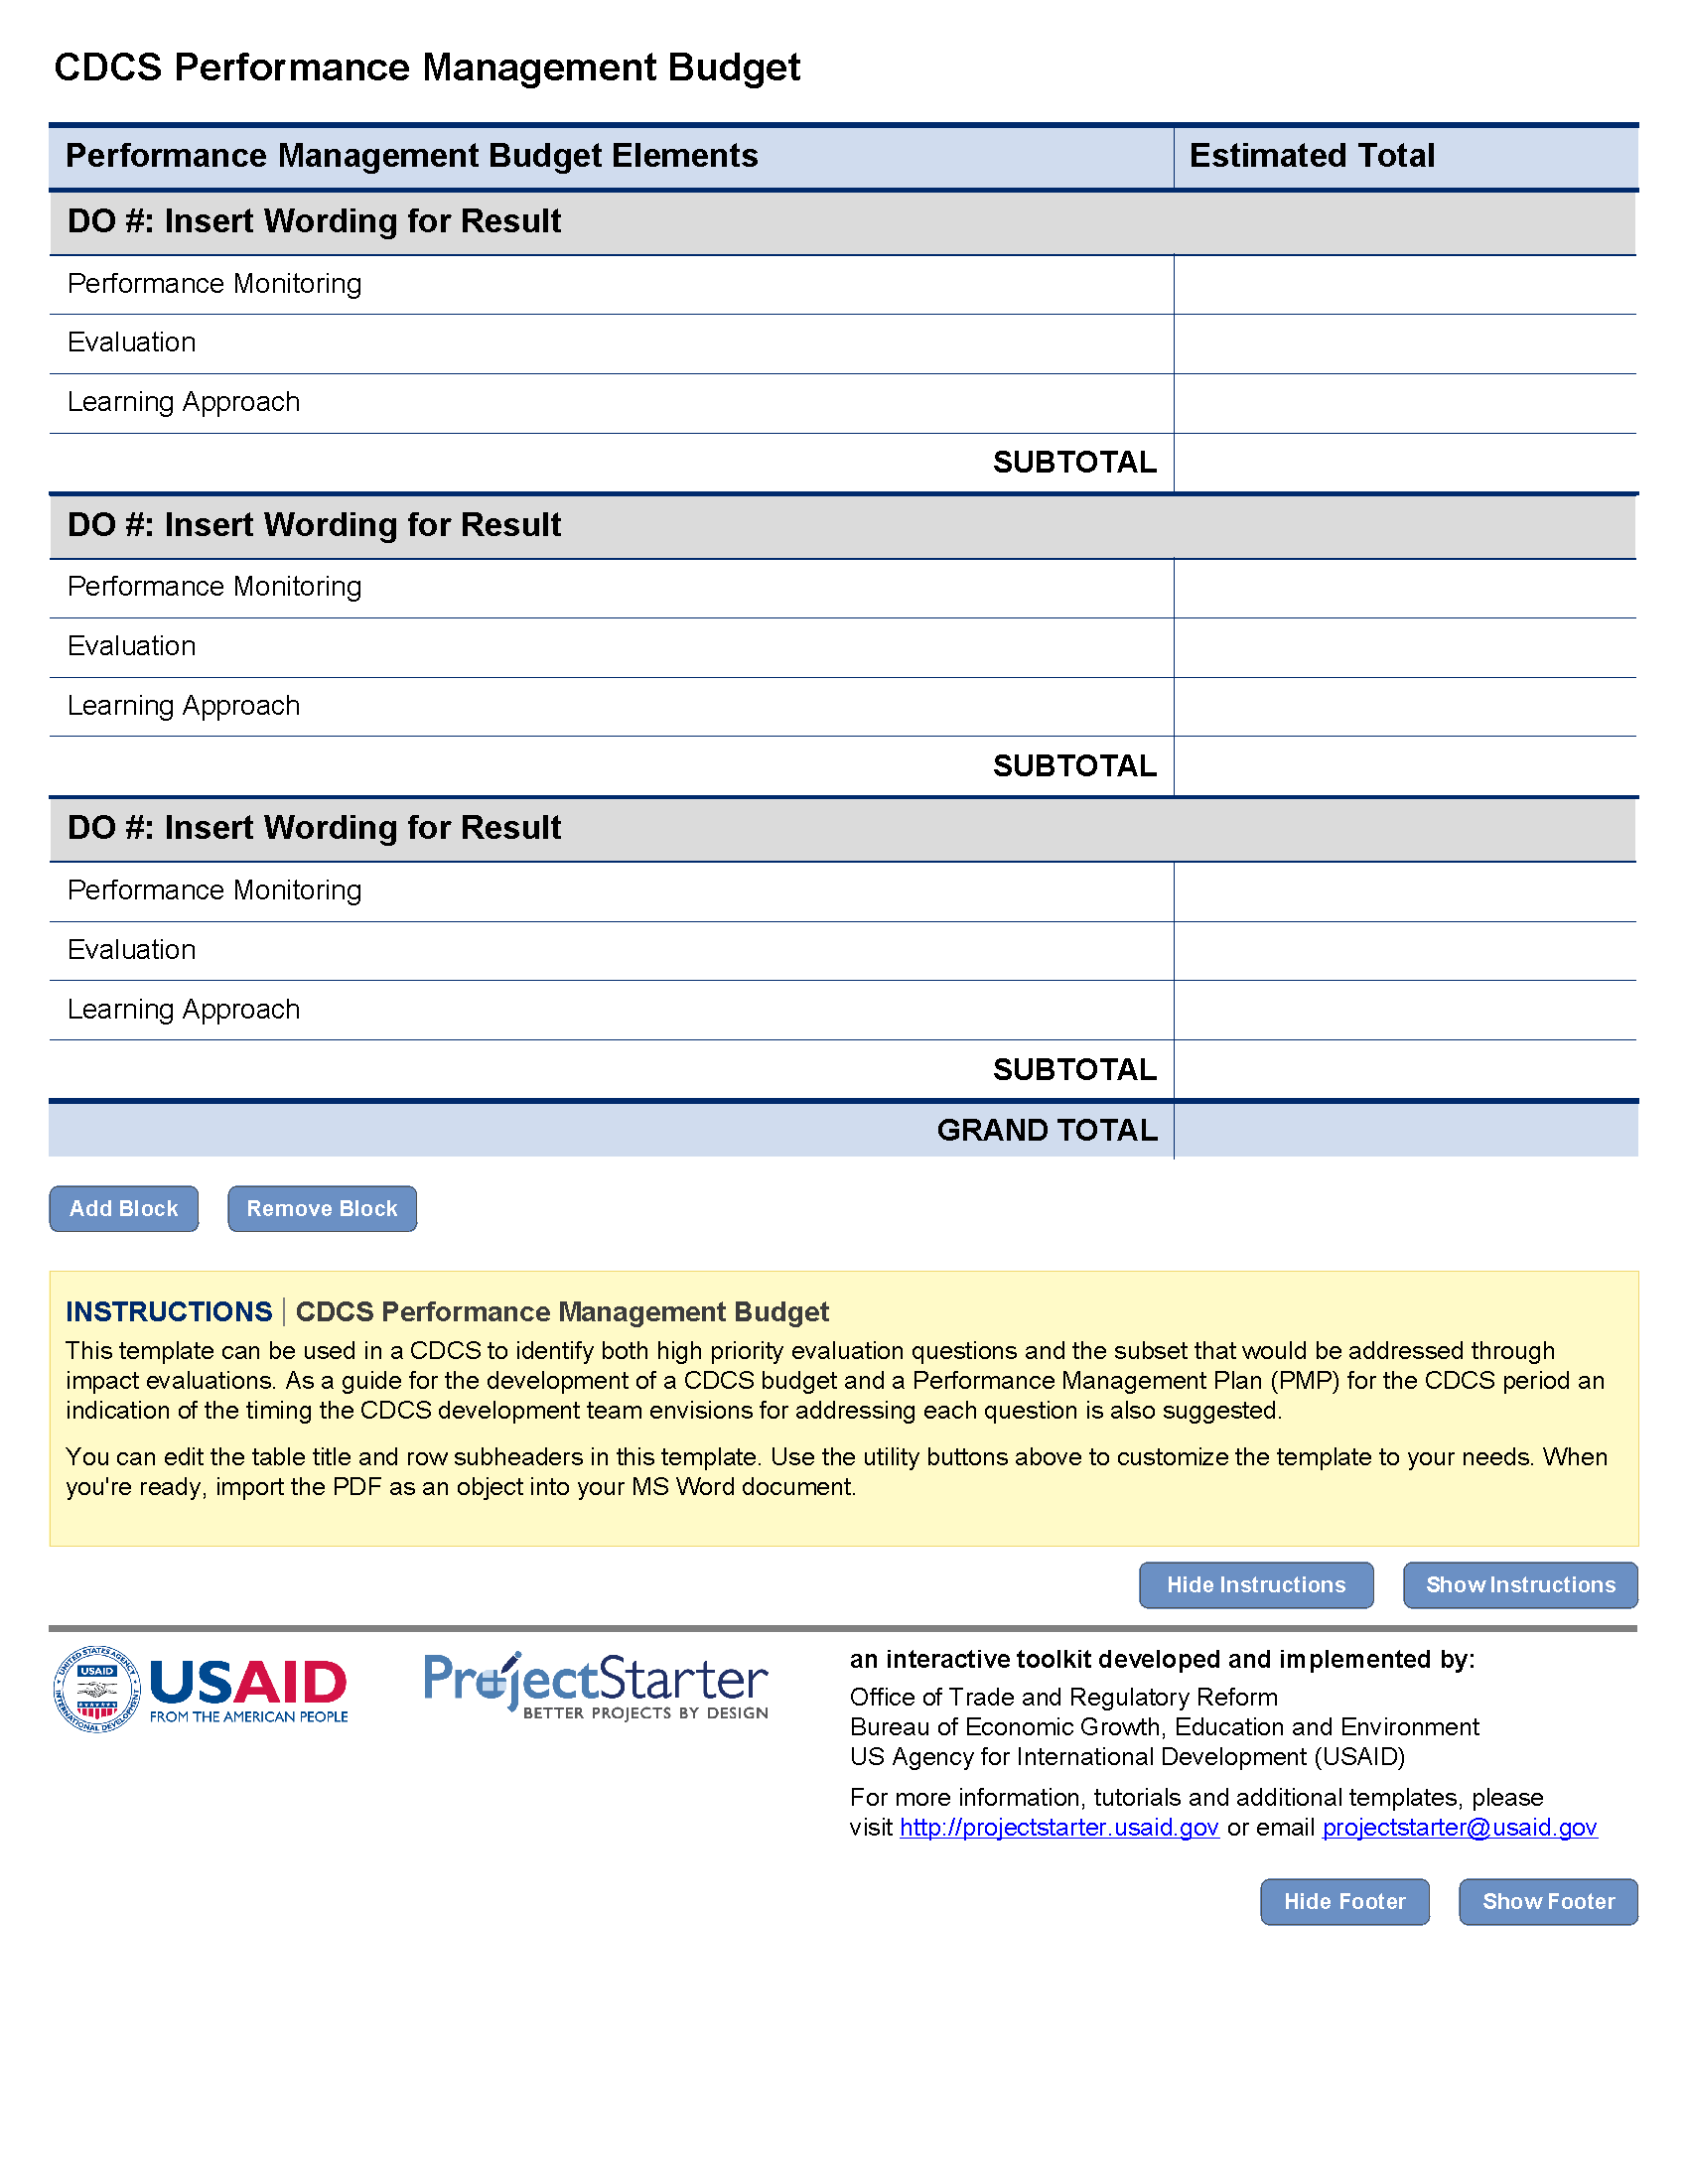 Financial Budget Spreadsheet and Performance Management Bud Template Project Starter Usaid